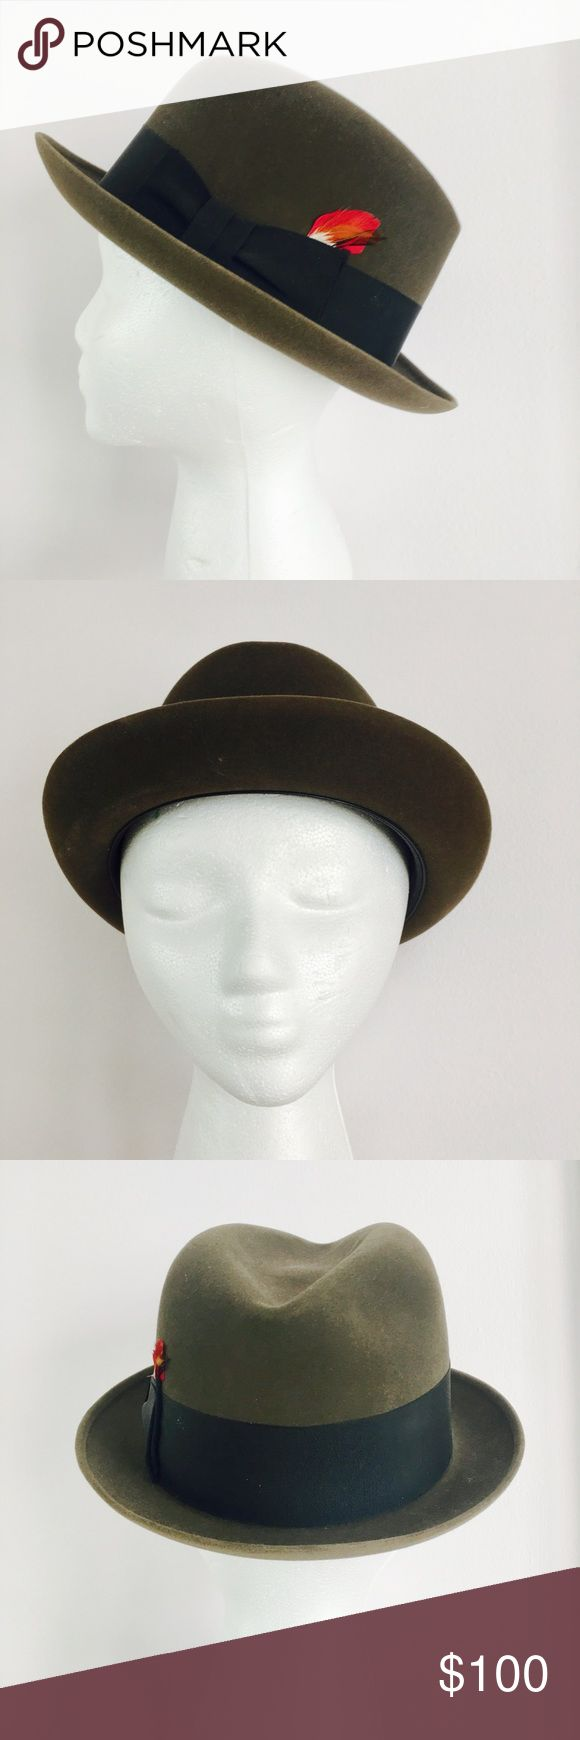 Vintage 1960s Dobbs Fifth Avenue Men's Fedora Hat Vintage 1960s handsome mens fedora style hat from Dobbs of Fifth Avenue.  Will come with the original Dobbs decorative/protective hat box.  Rich dark brown felt material with a darker brown ribbon band with small red feather.  Has been worn, but is in excellent condition.  💸Always open to reasonable offers - PLEASE MAKE THEM WITH THE OFFER BUTTON 😊  ❔ Always happy to answer any and all questions   🚫 Sorry! No trades   🛍 Bundle to save…